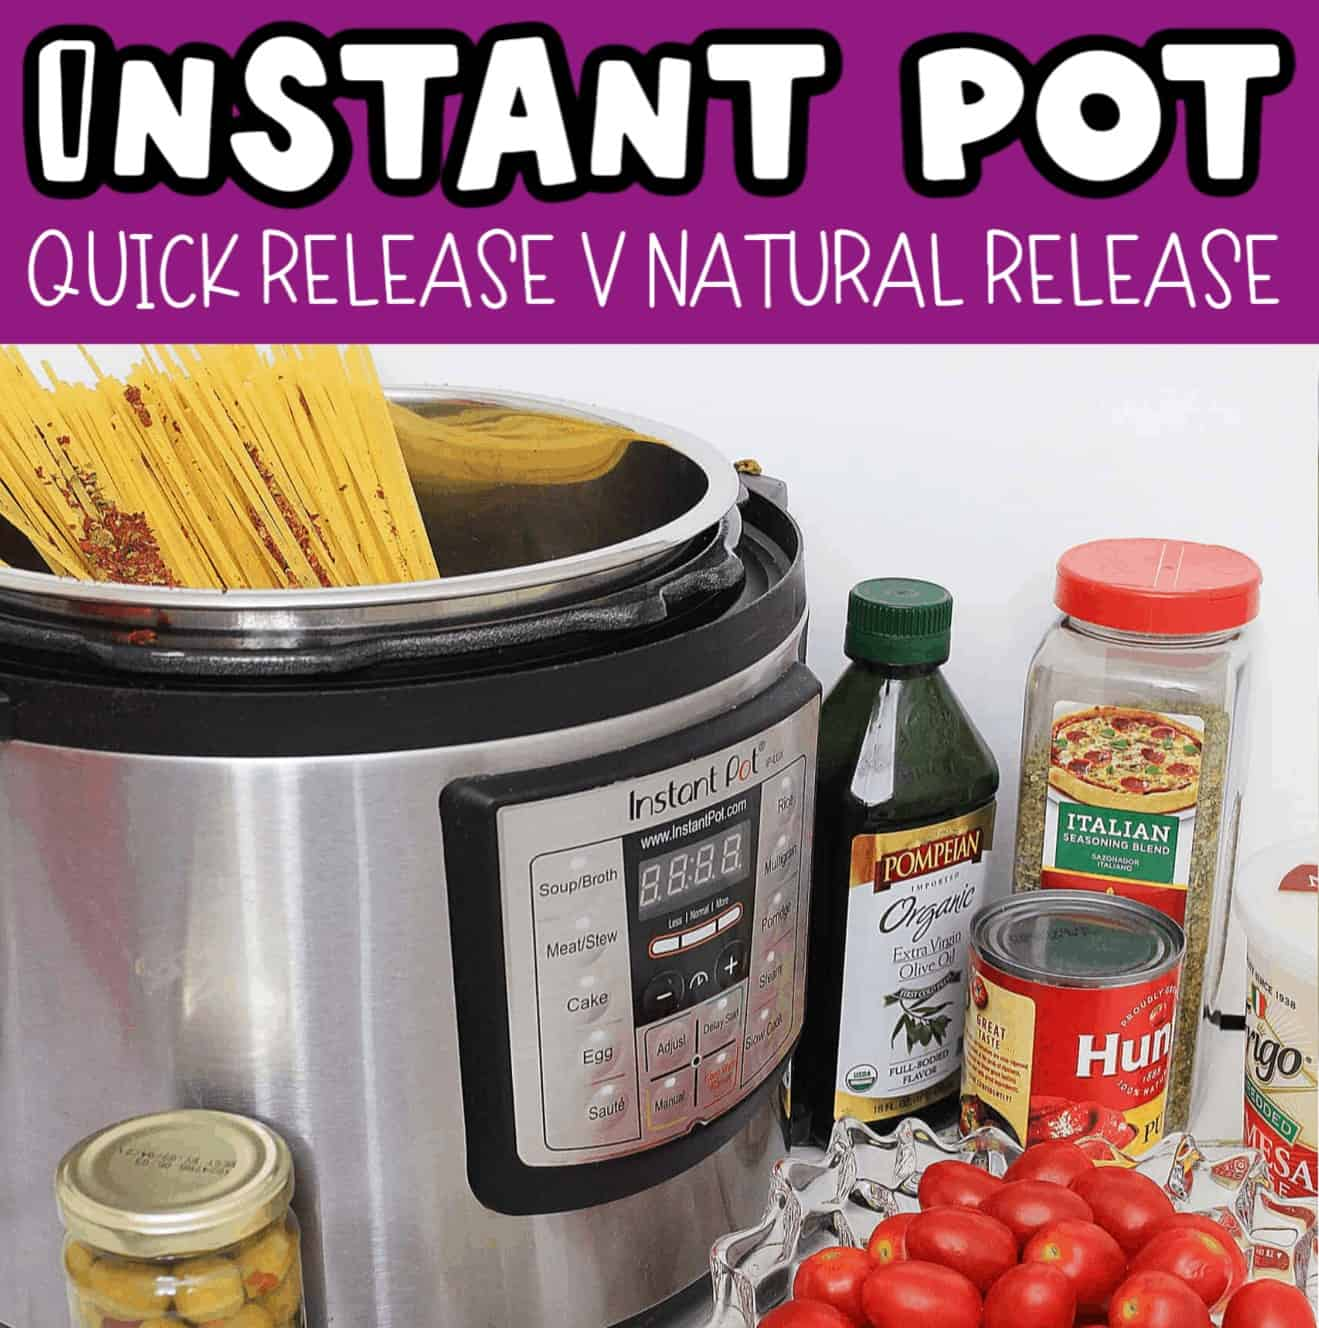 what is quick release instant pot and natural release